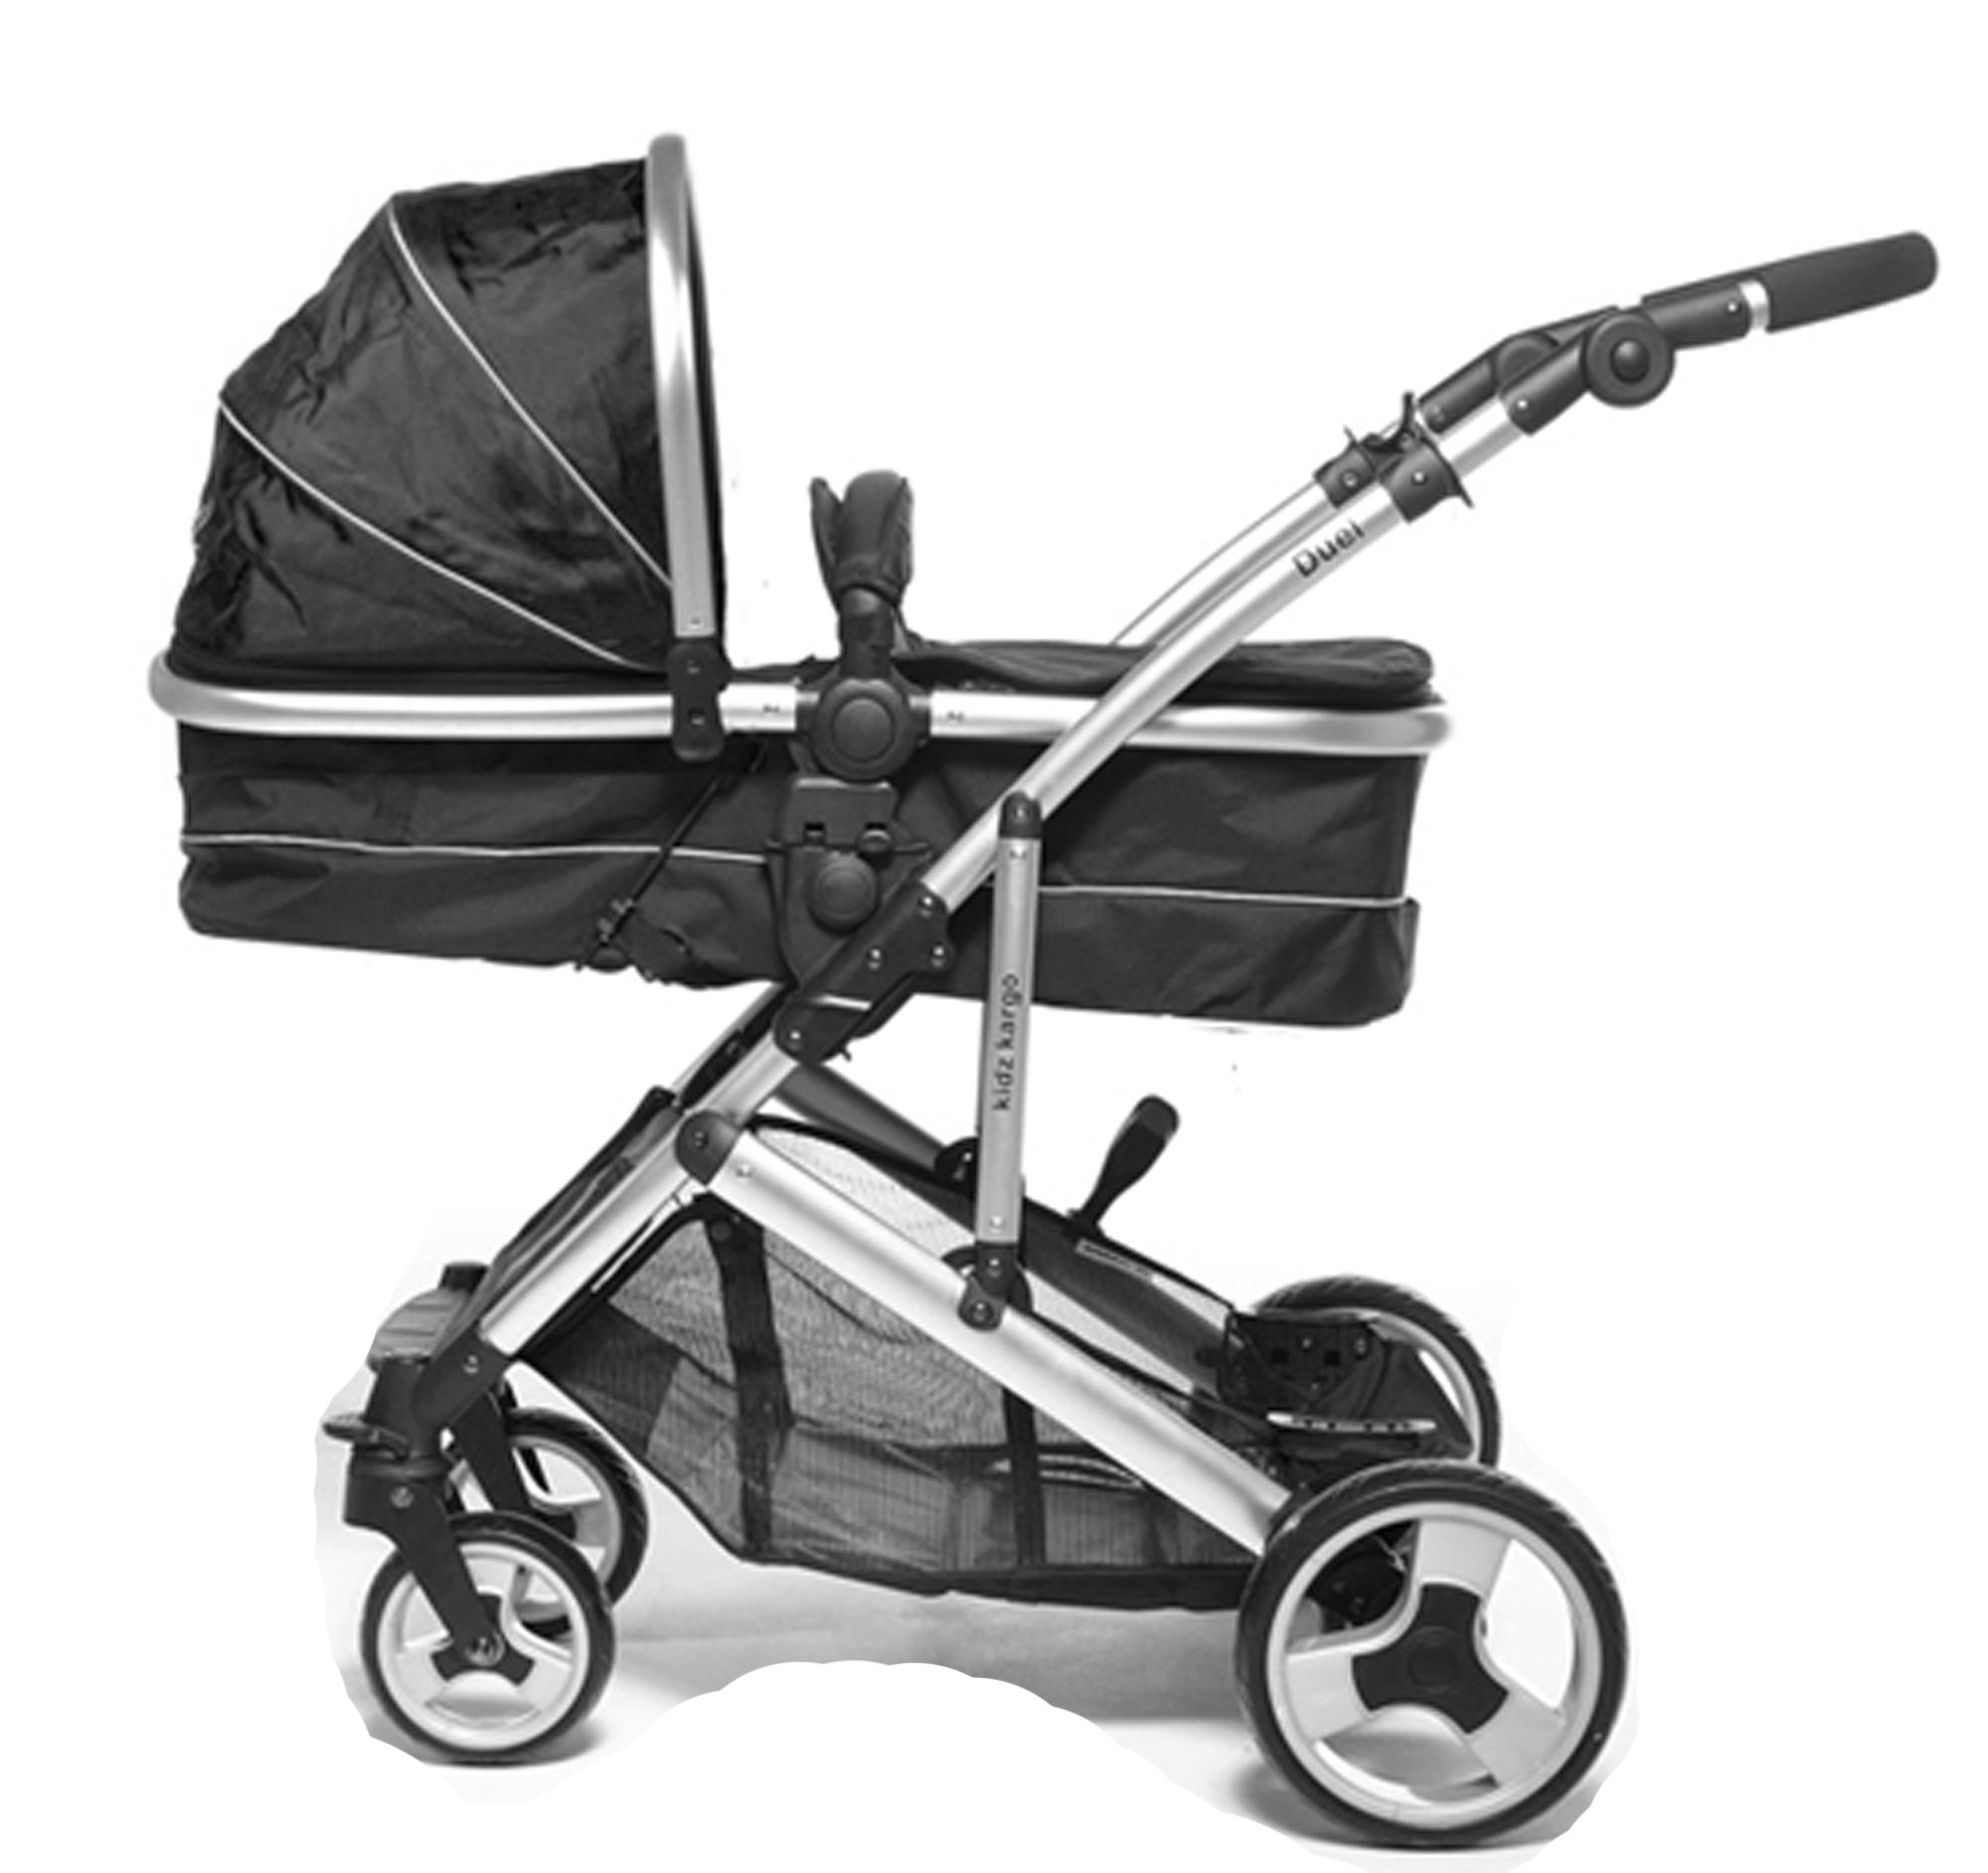 Kids Kargo Duel Combo Tandem Double Pushchair Stroller, Midnight Black Kids Kargo Tandem double pushchair suitable for newborn and toddler Complete with carrycot that converts to a seat unto to grow with your baby. carrycot has soft padded lining which zips off and mattress.. Carrycot & car seats fit in top or bottom position. compatible car seats; kidz kargo 0+, britax babysafe 0+ (no adapters needed) or maxi cosi adaptors 3